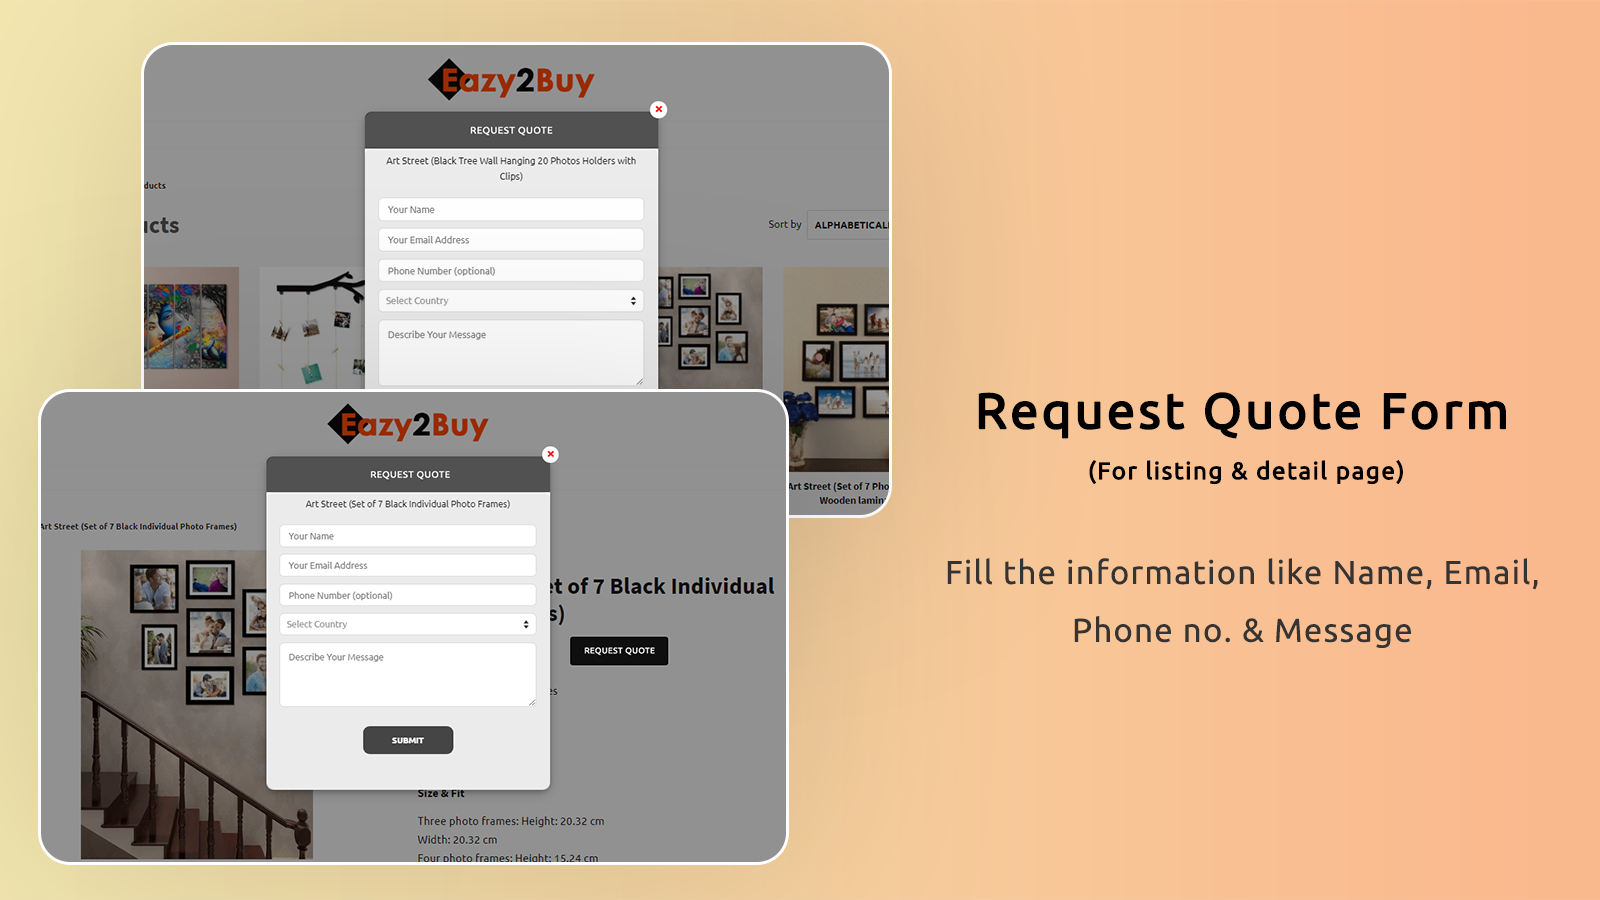 Request form for product detail & listing page